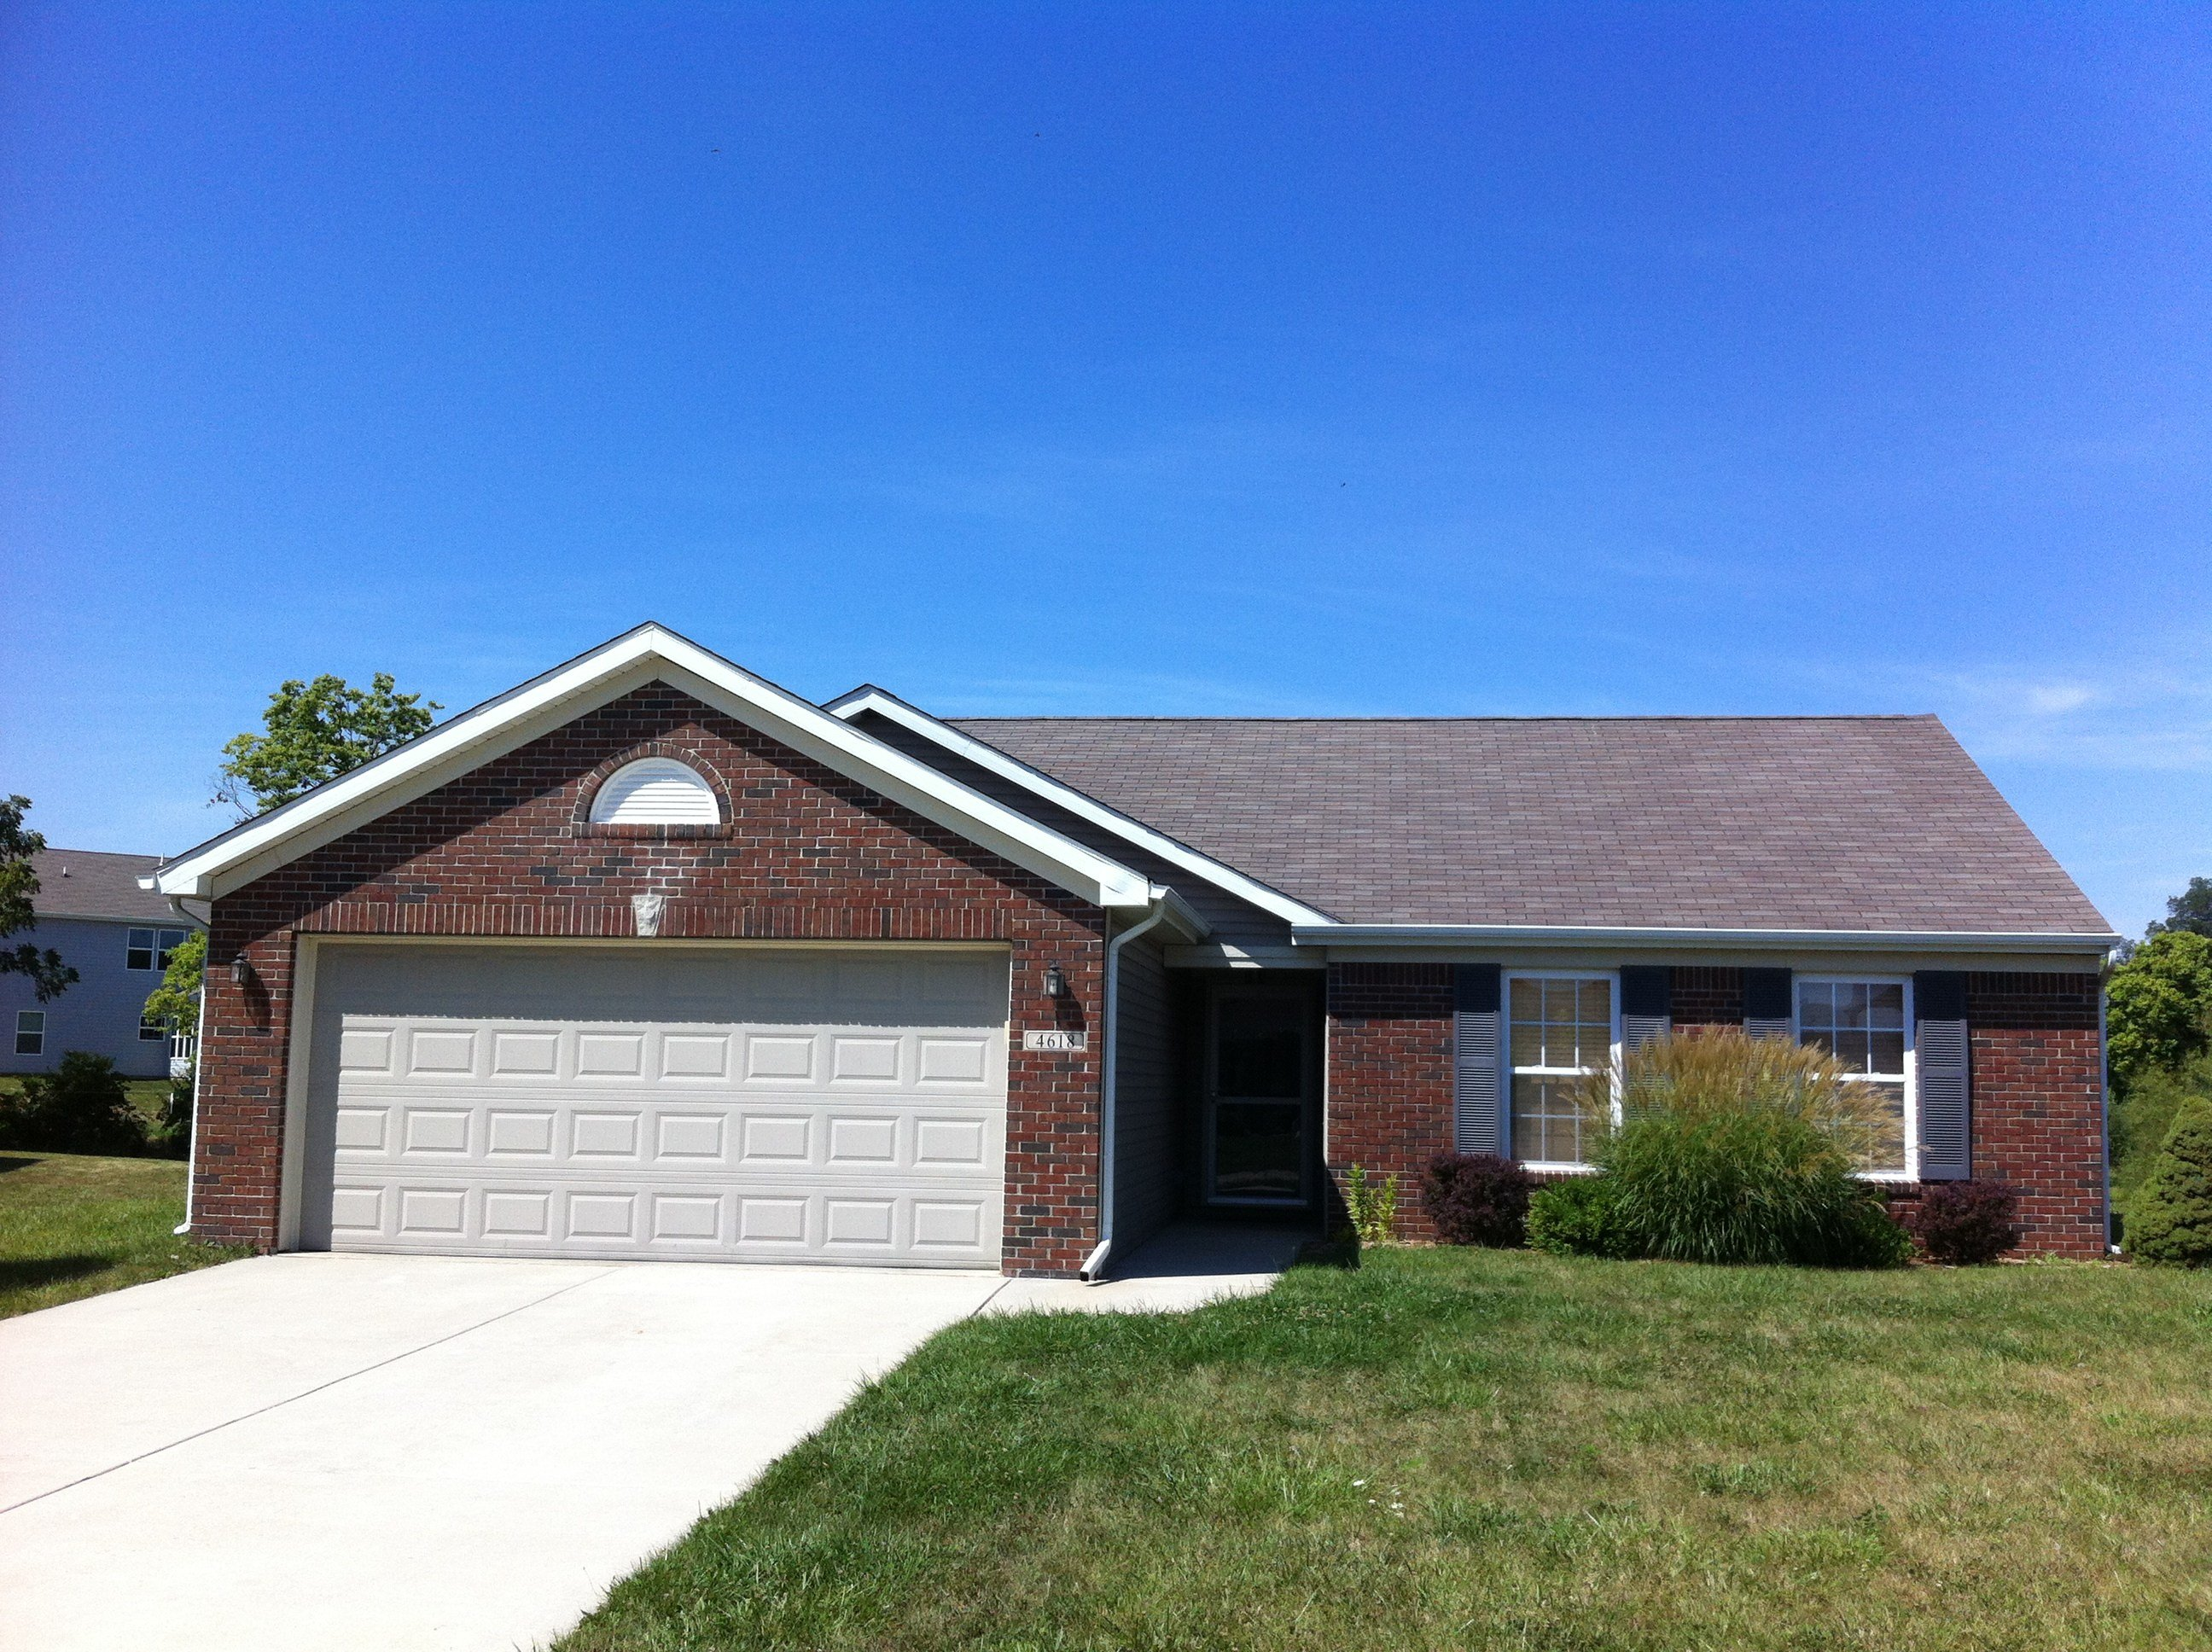 Best West Lafayette Prophet Ridge 3 Bedroom 2 Full Bath Ranch Homes For Sale In West Lafayette In With Pictures